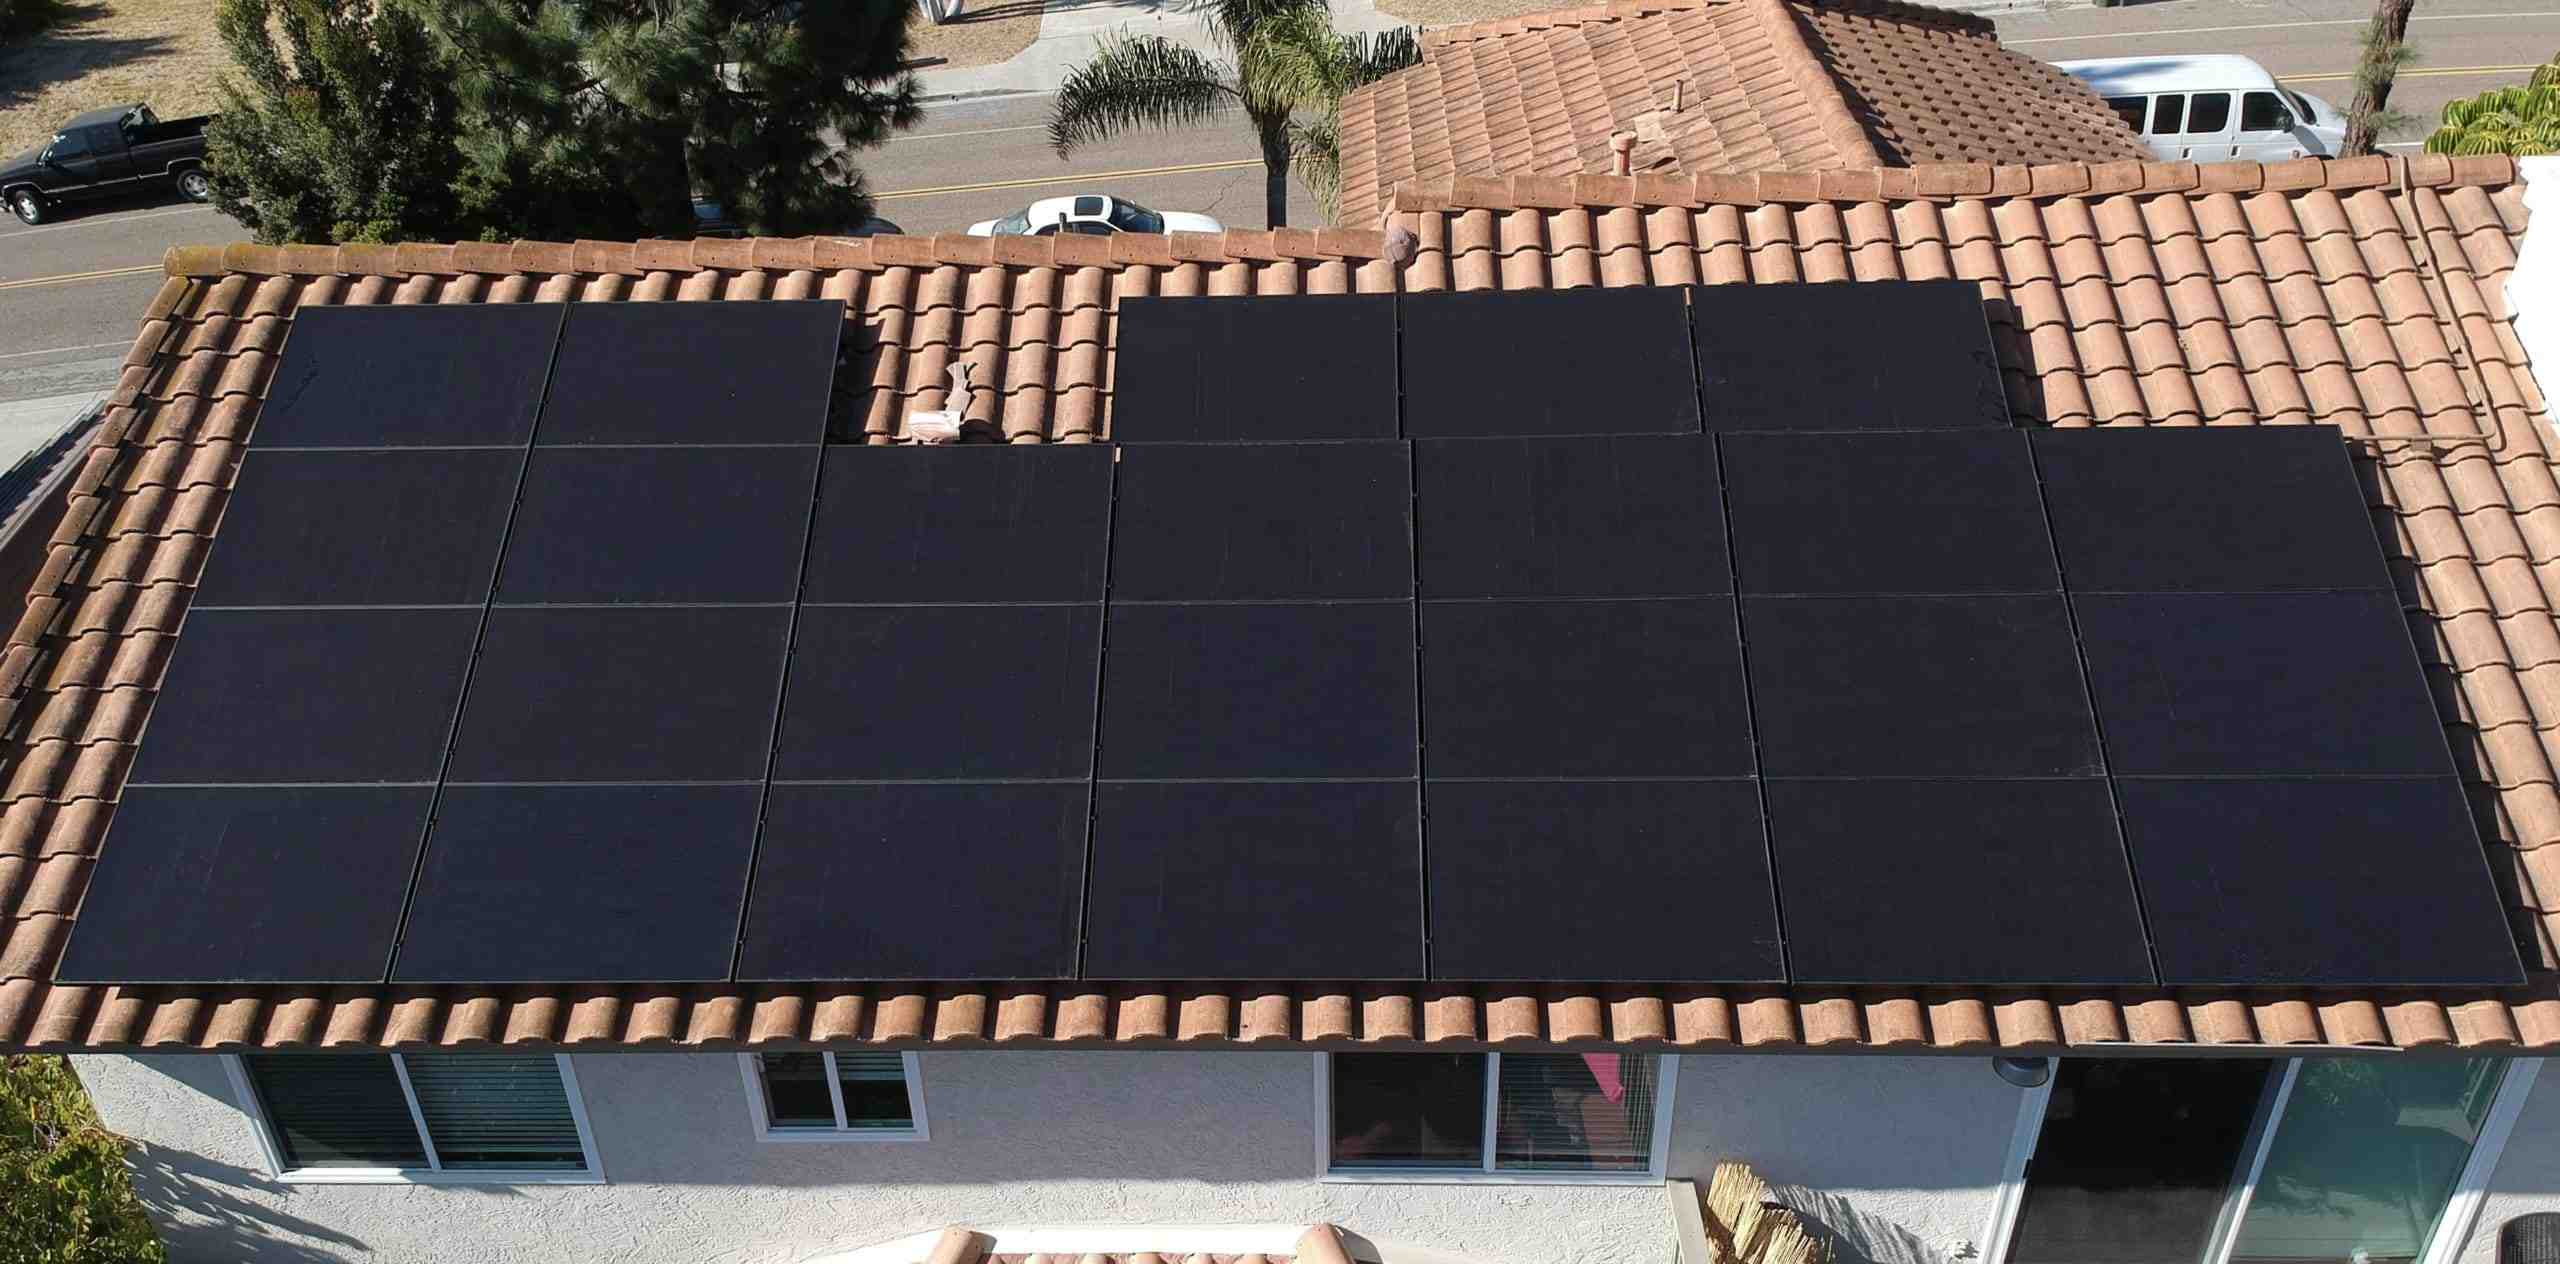 How much does a solar panel roof cost?